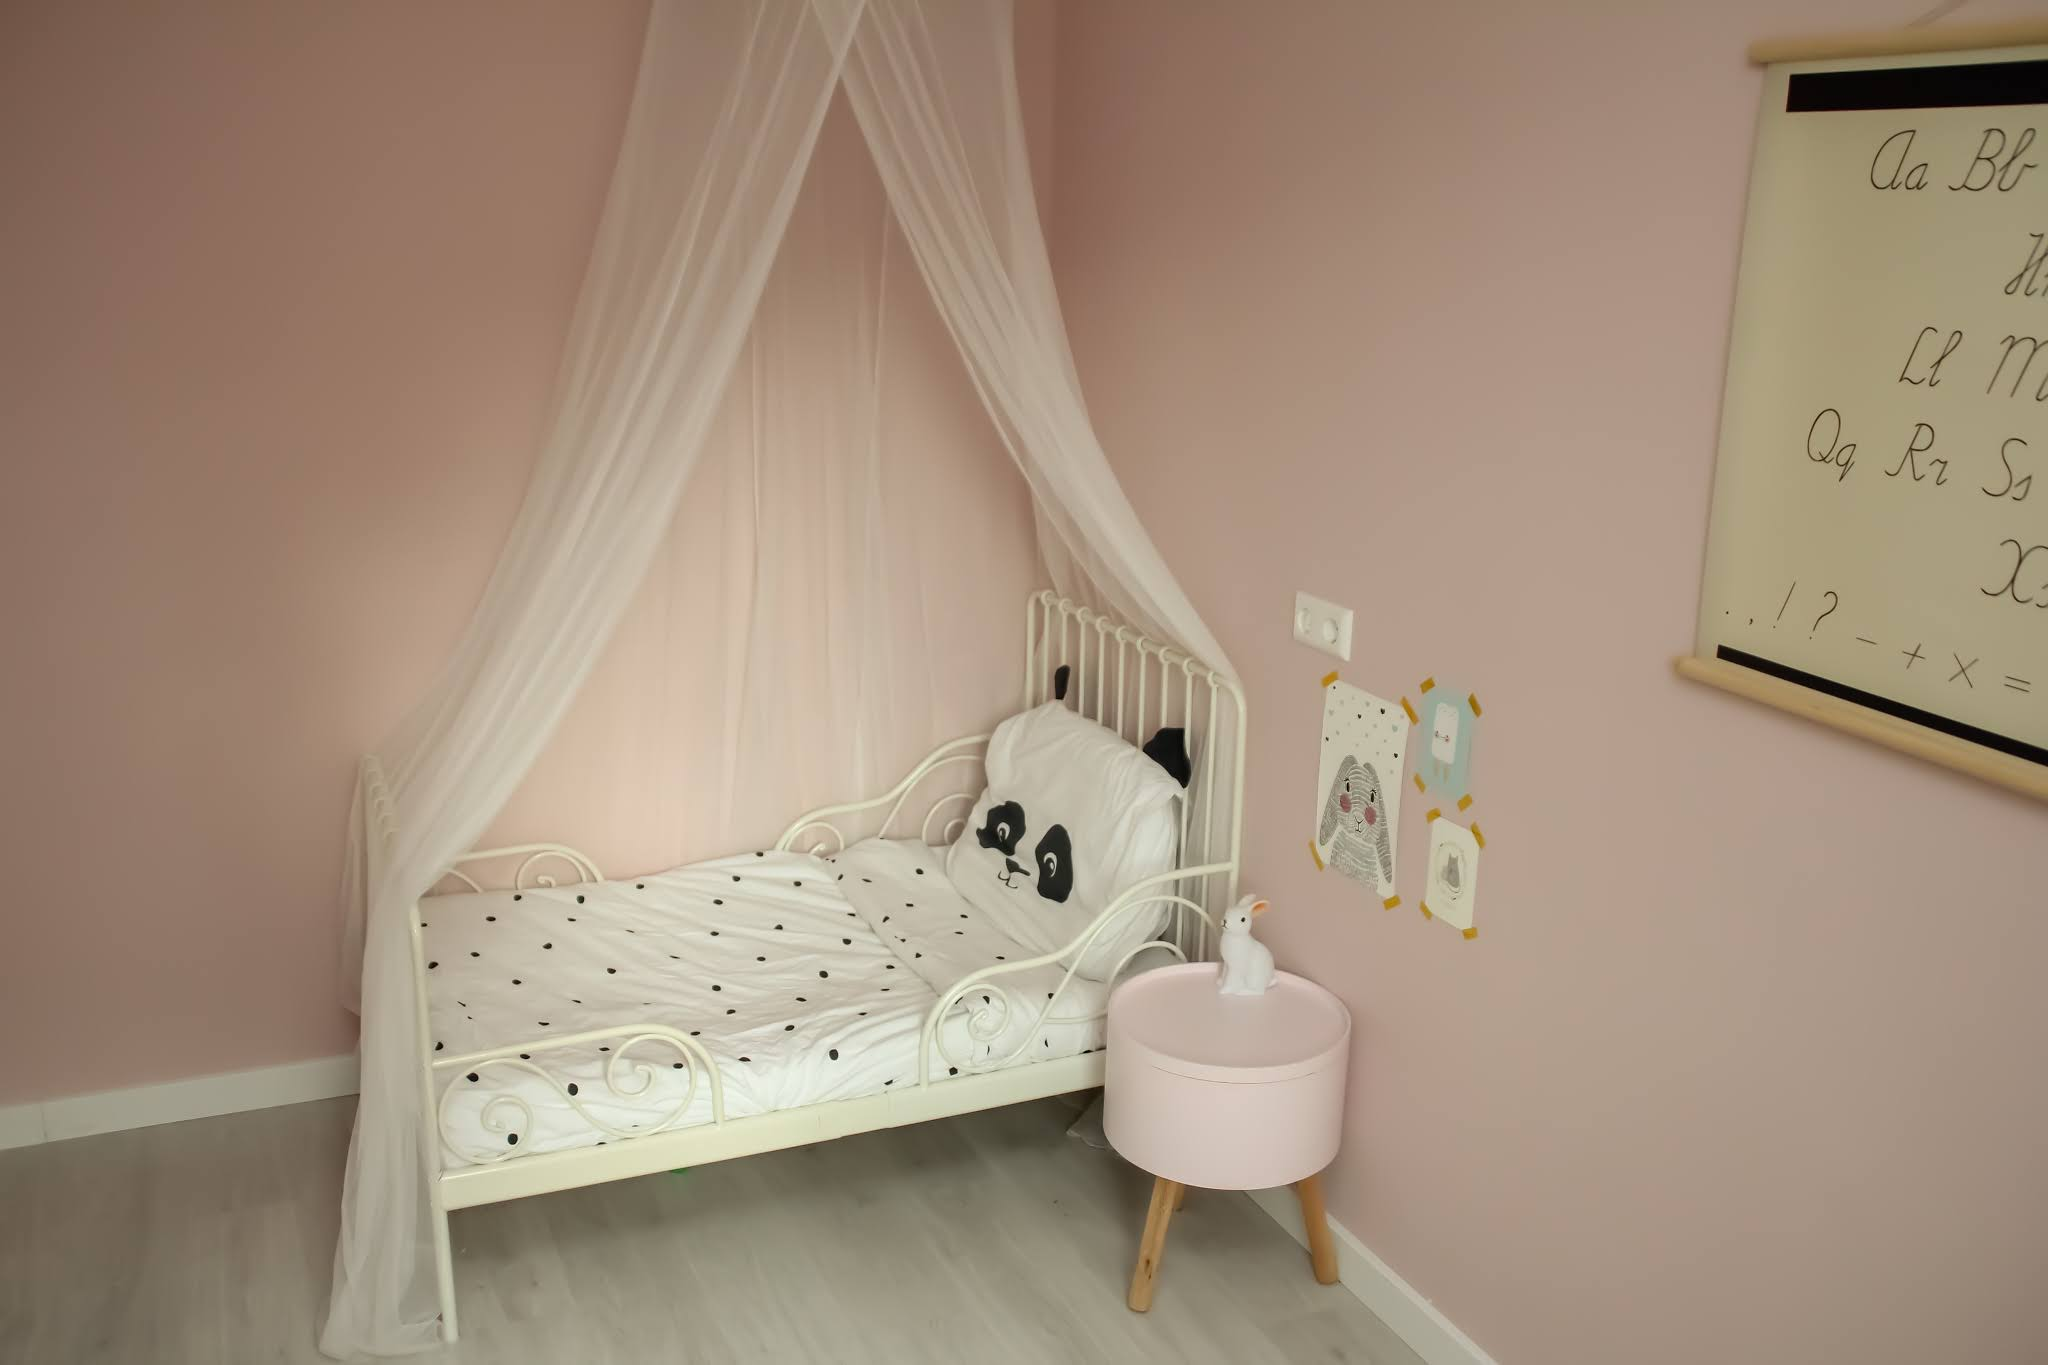 A muted colours childs bedroom free to use from Unsplash  Sven Bradsma